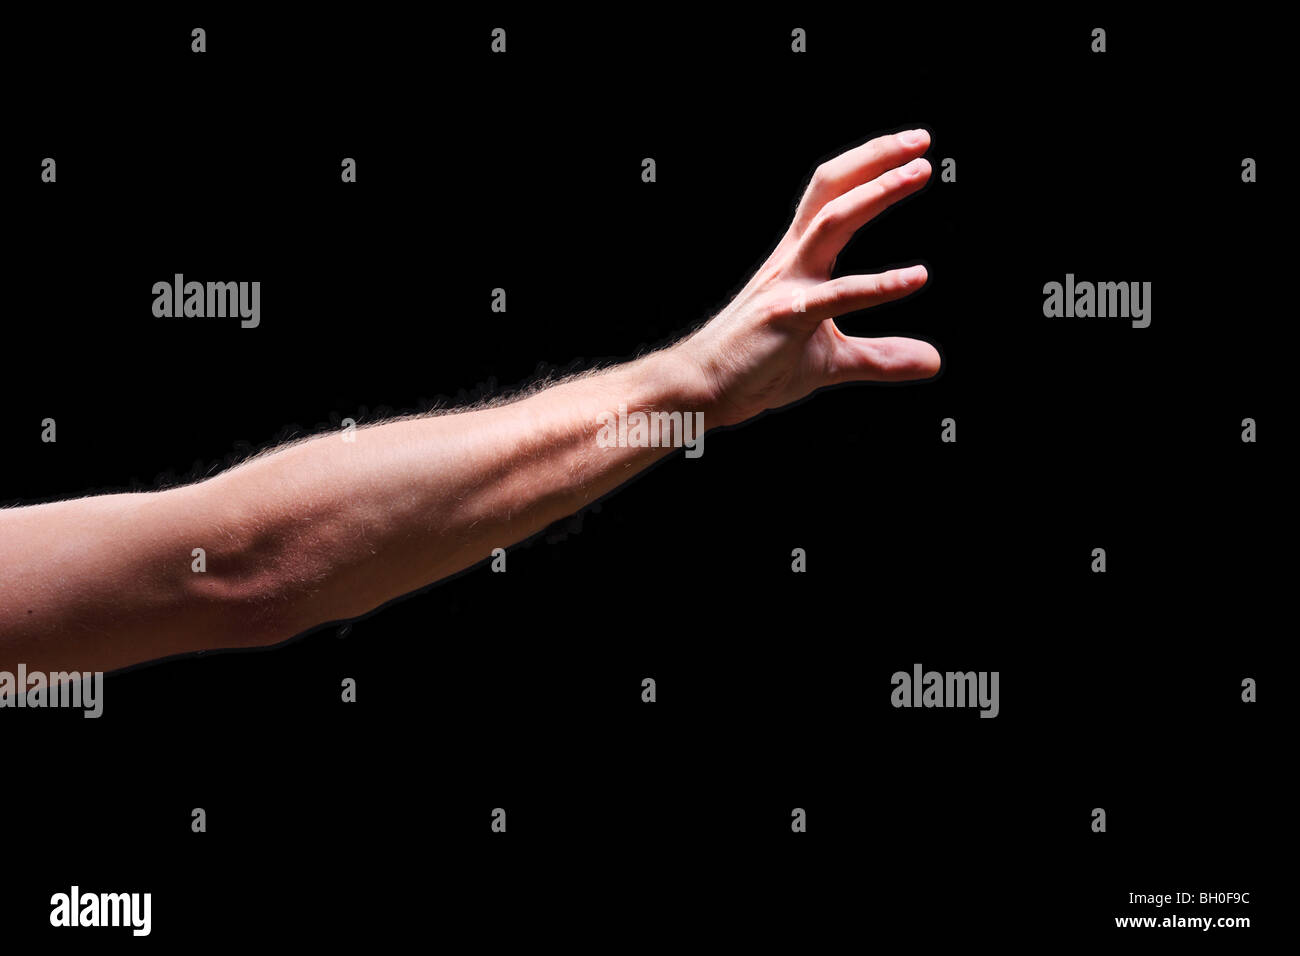 Hand isolated on black - Stock Image